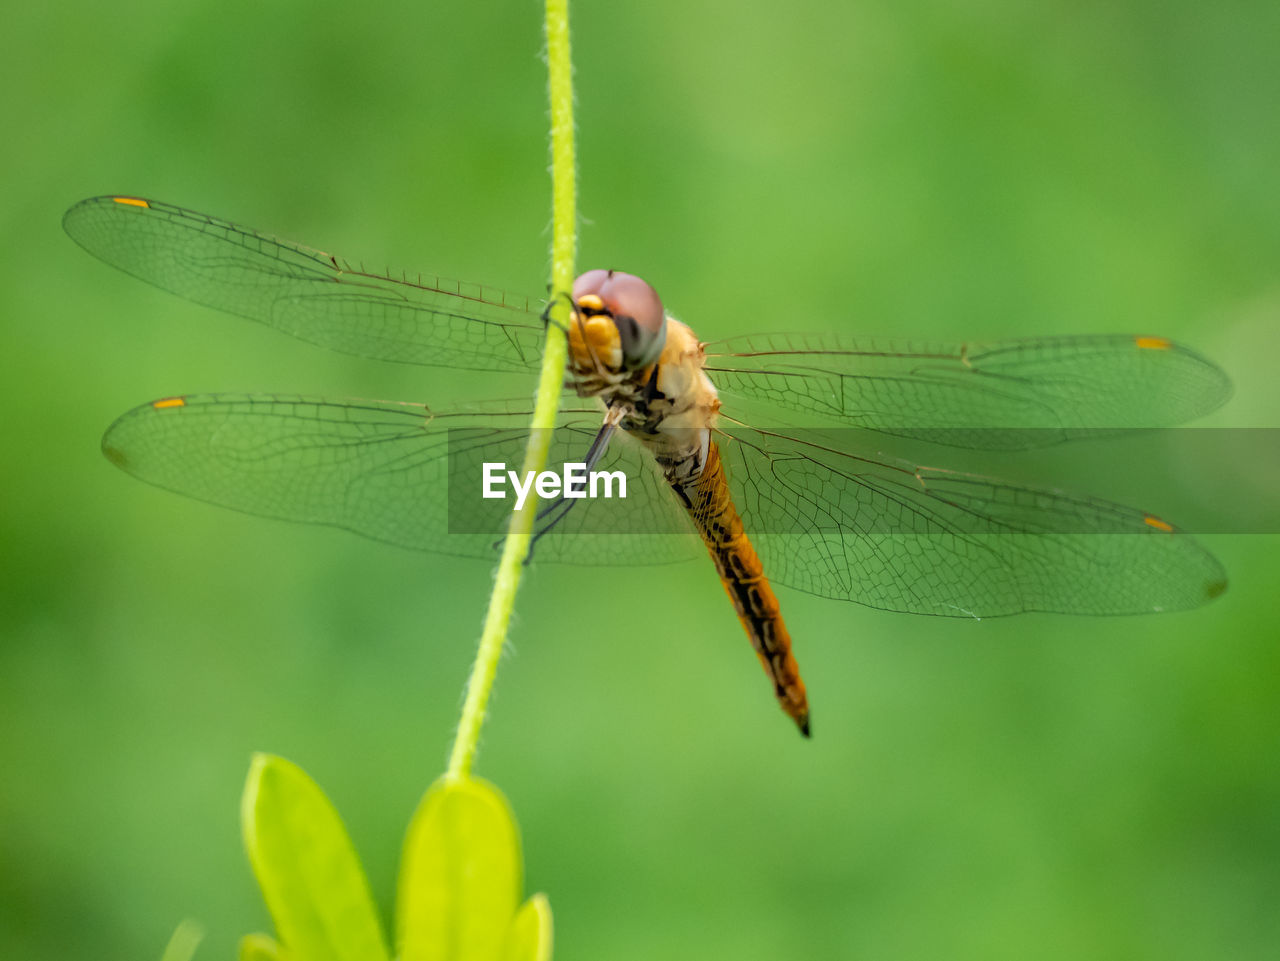 invertebrate, insect, animal wildlife, animal themes, animals in the wild, animal, one animal, close-up, green color, plant, animal wing, nature, plant part, leaf, focus on foreground, day, growth, dragonfly, no people, beauty in nature, outdoors, animal eye